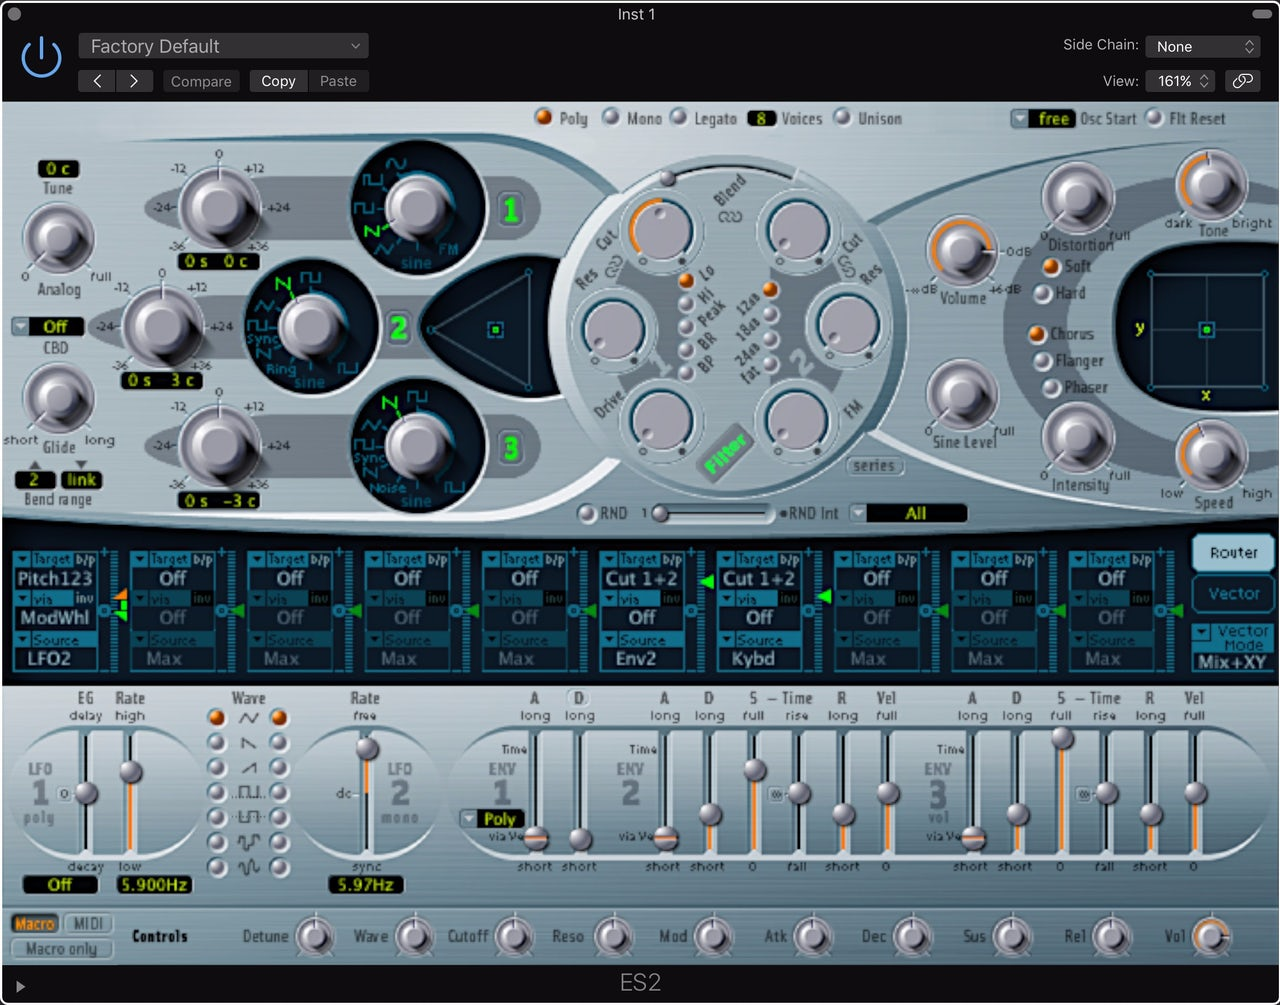 The ES2 synthesizer in Logic Pro X (released 2013)